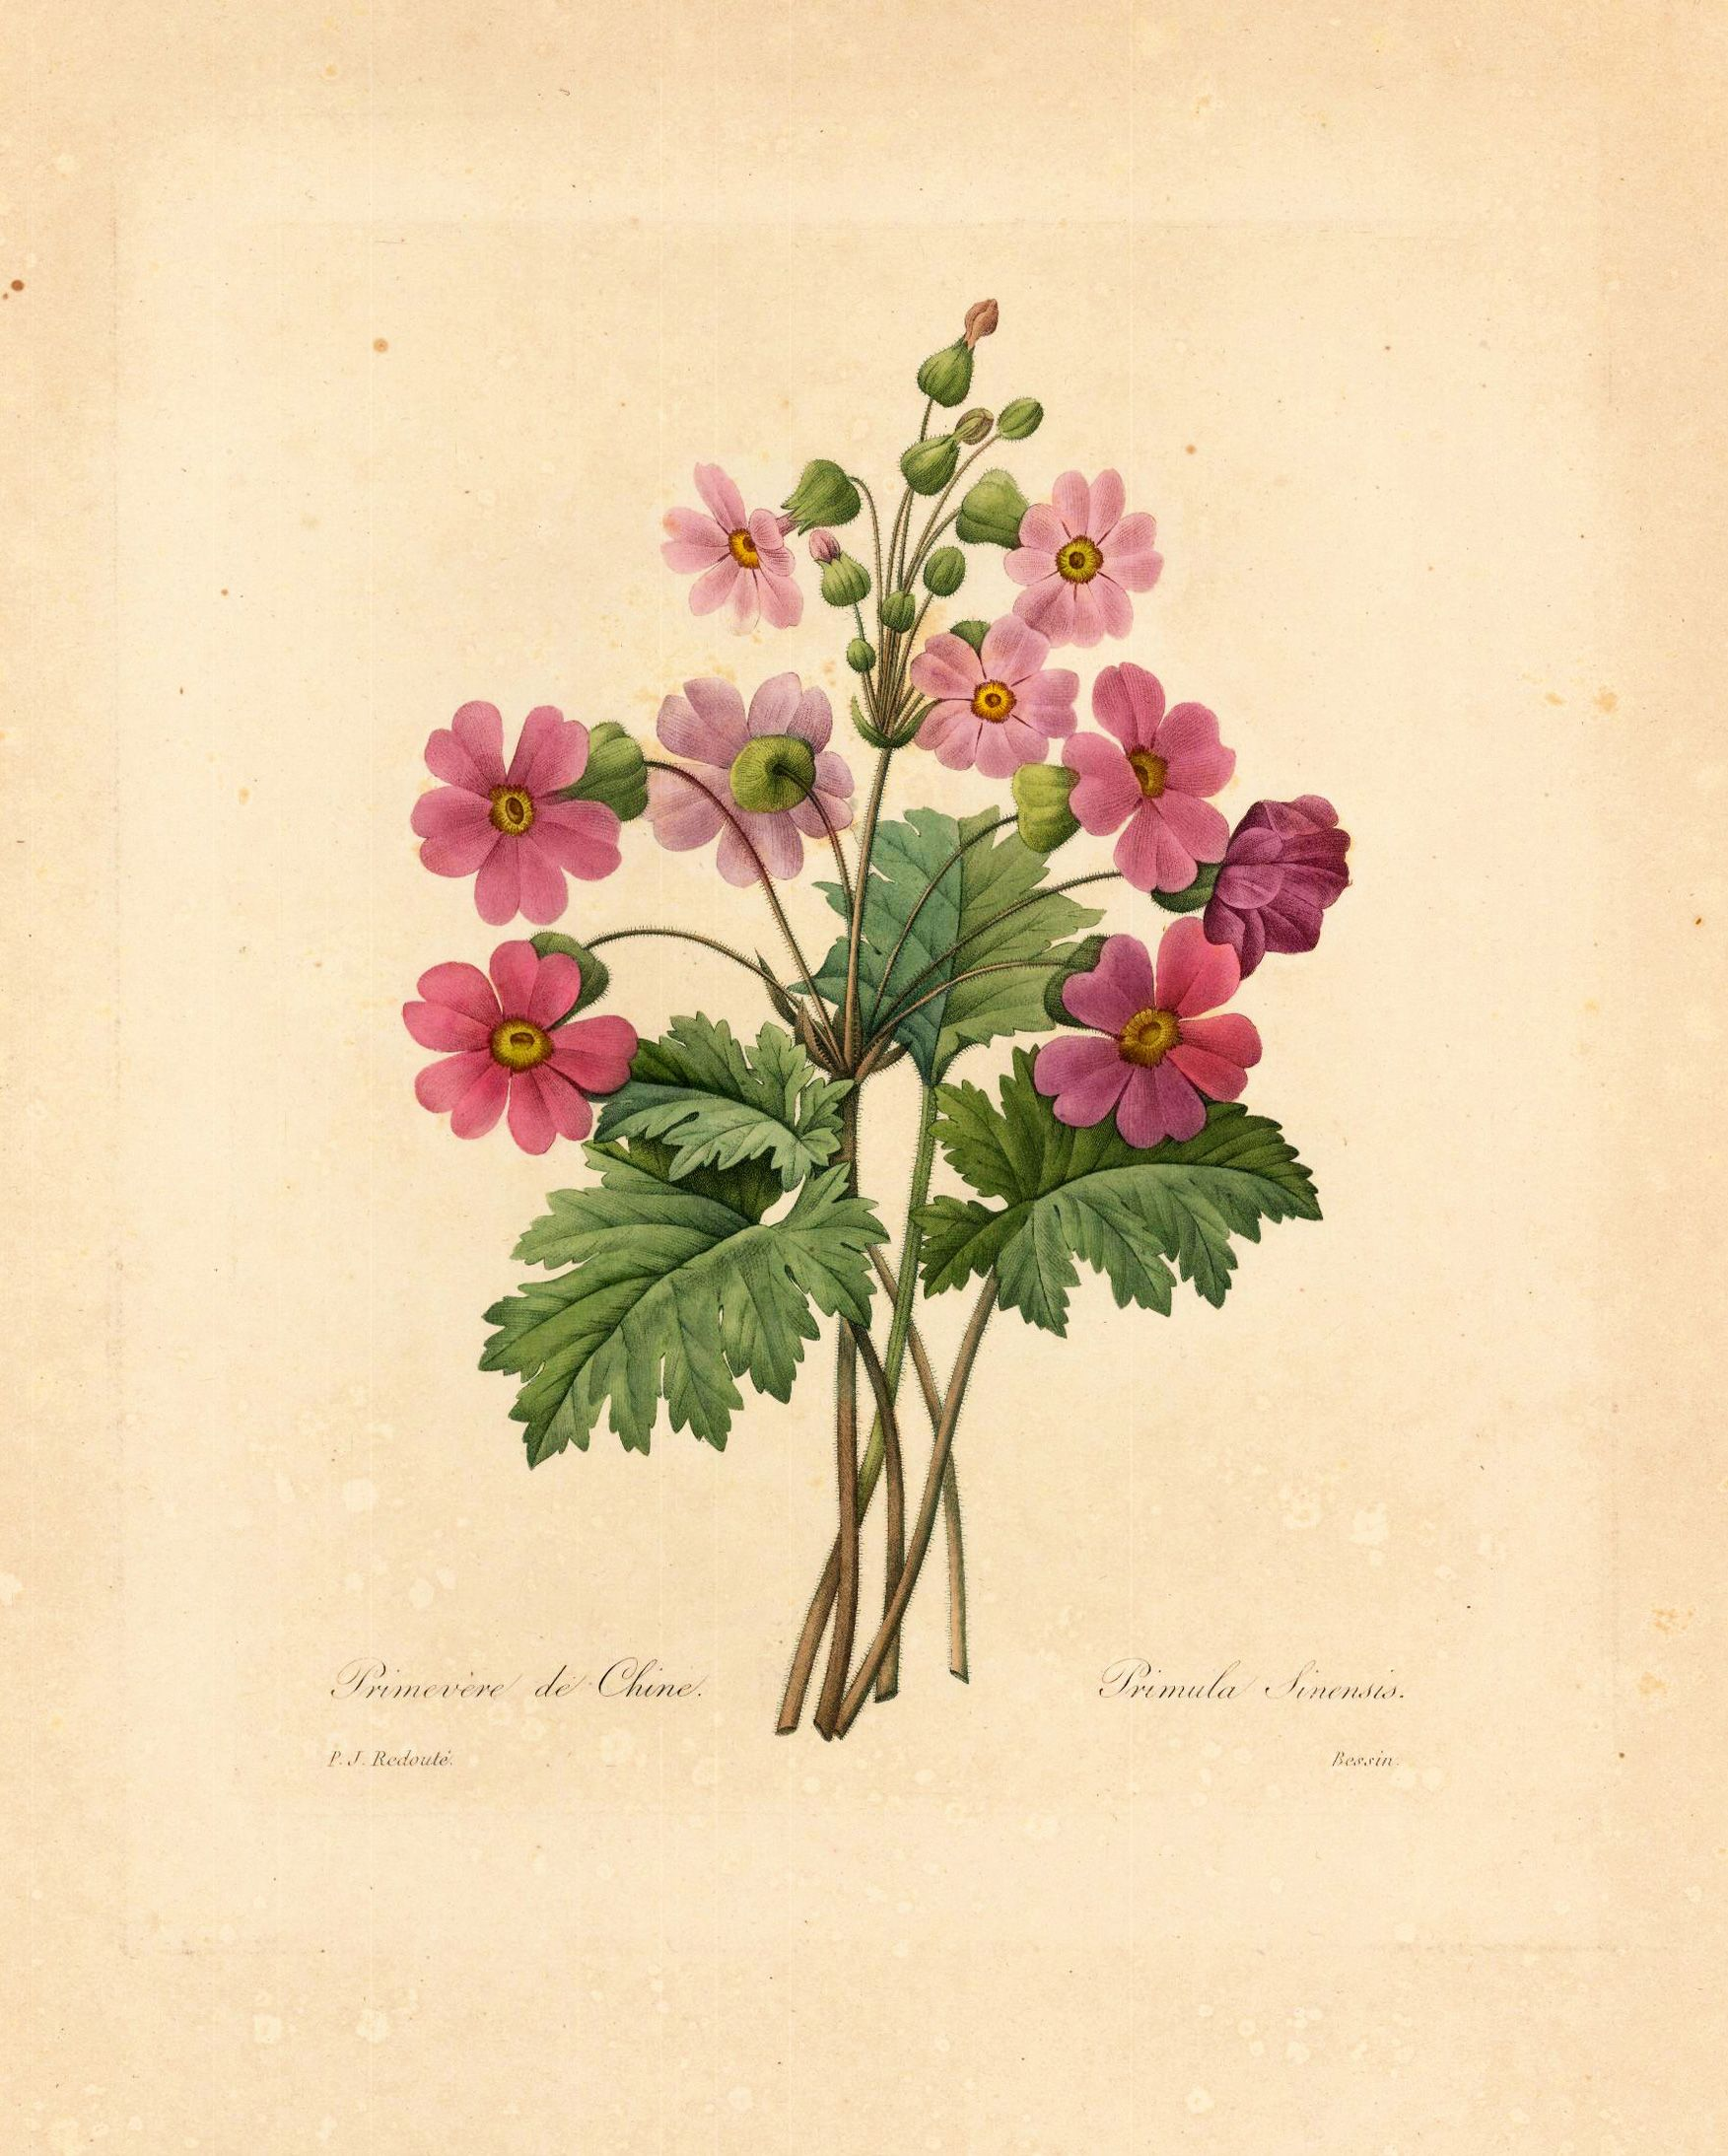 Red Chinese Primrose Flower Print Vintage Botanical Wall Art Redoute Flowers Book Plate No